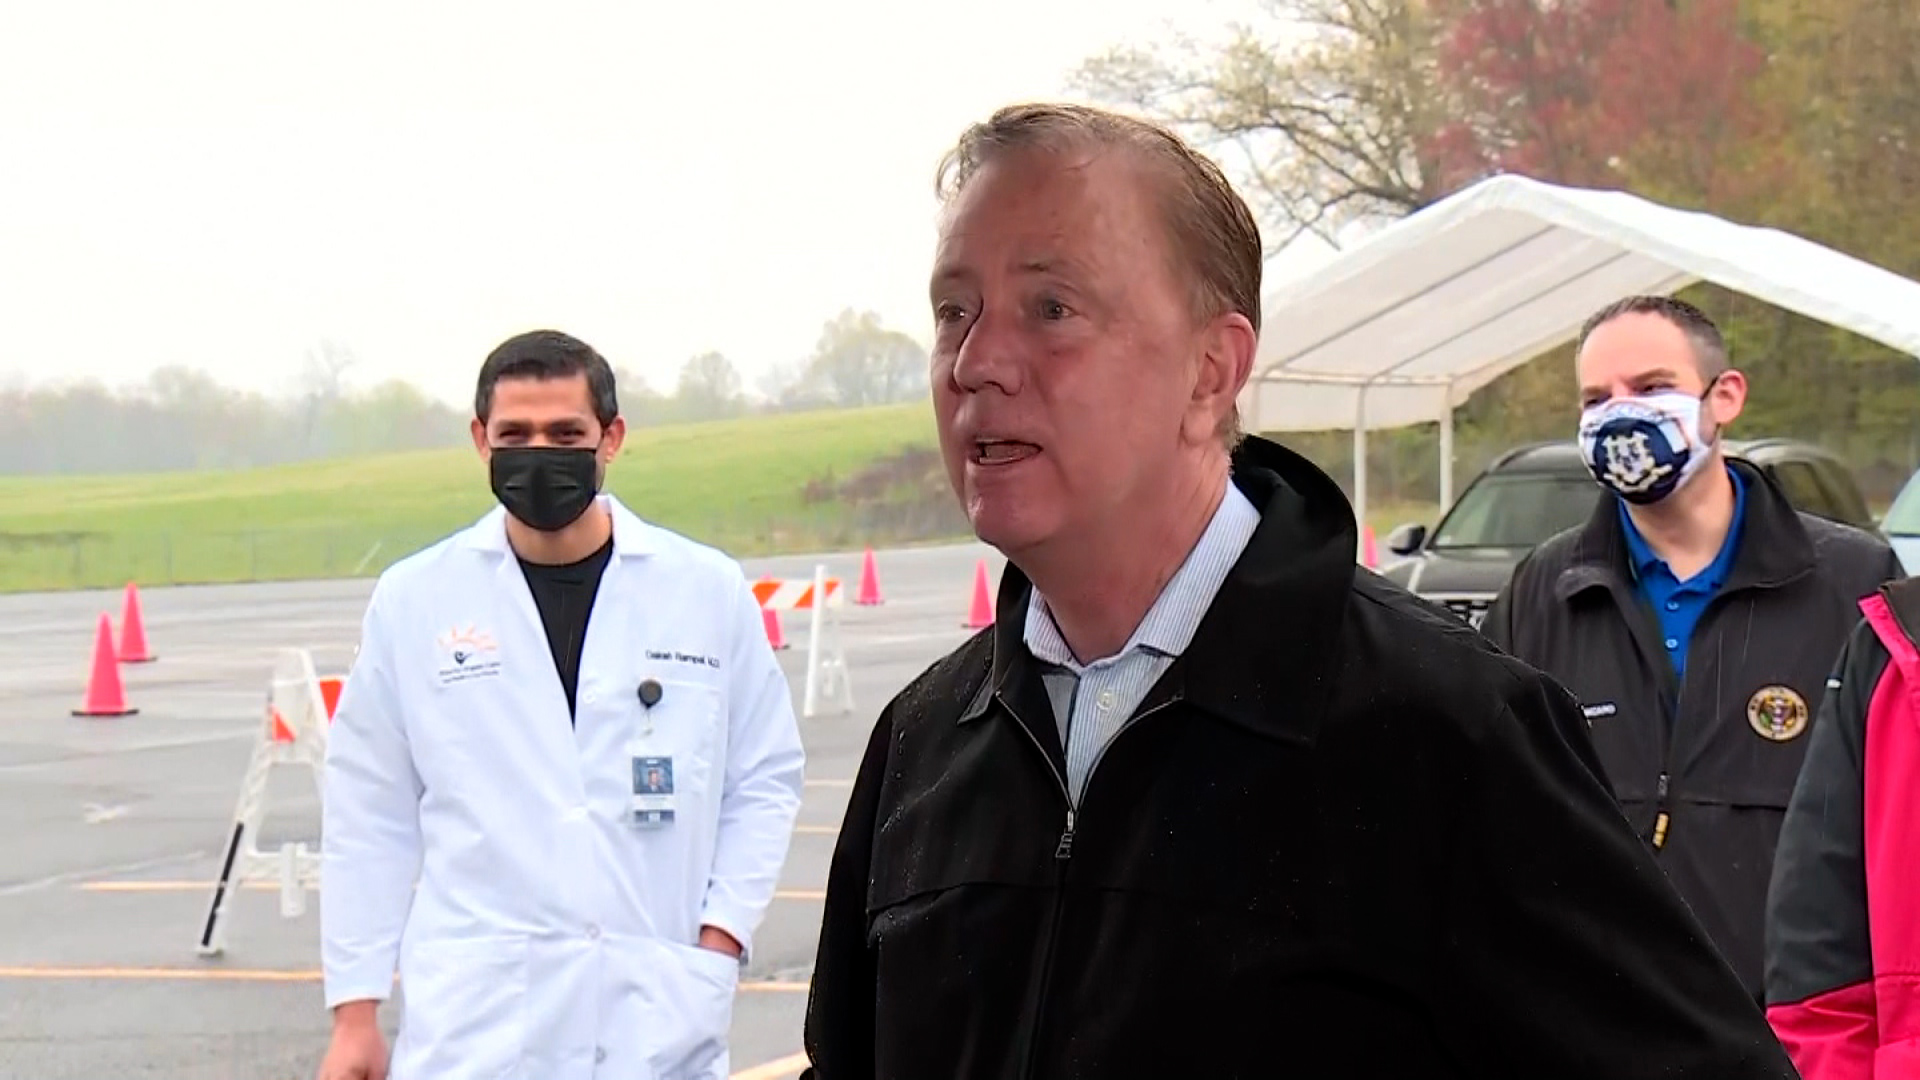 Connecticut Gov. Ned Lamont speaks at a COVID-19 vaccination clinic and food giveaway event in East Windsor, Connecticut, on April 29.